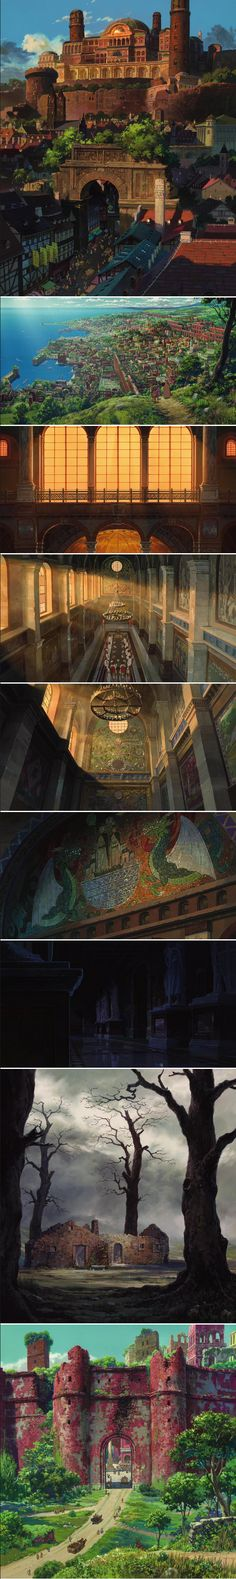 Tales From Earthsea. Directed by Gorō Miyazaki and produced by Studio Ghibli. Studio Ghibli Art, Studio Ghibli Movies, Art Et Illustration, Illustrations, Fantasy City, Fantasy World, Environment Concept, Environment Design, Hayao Miyazaki